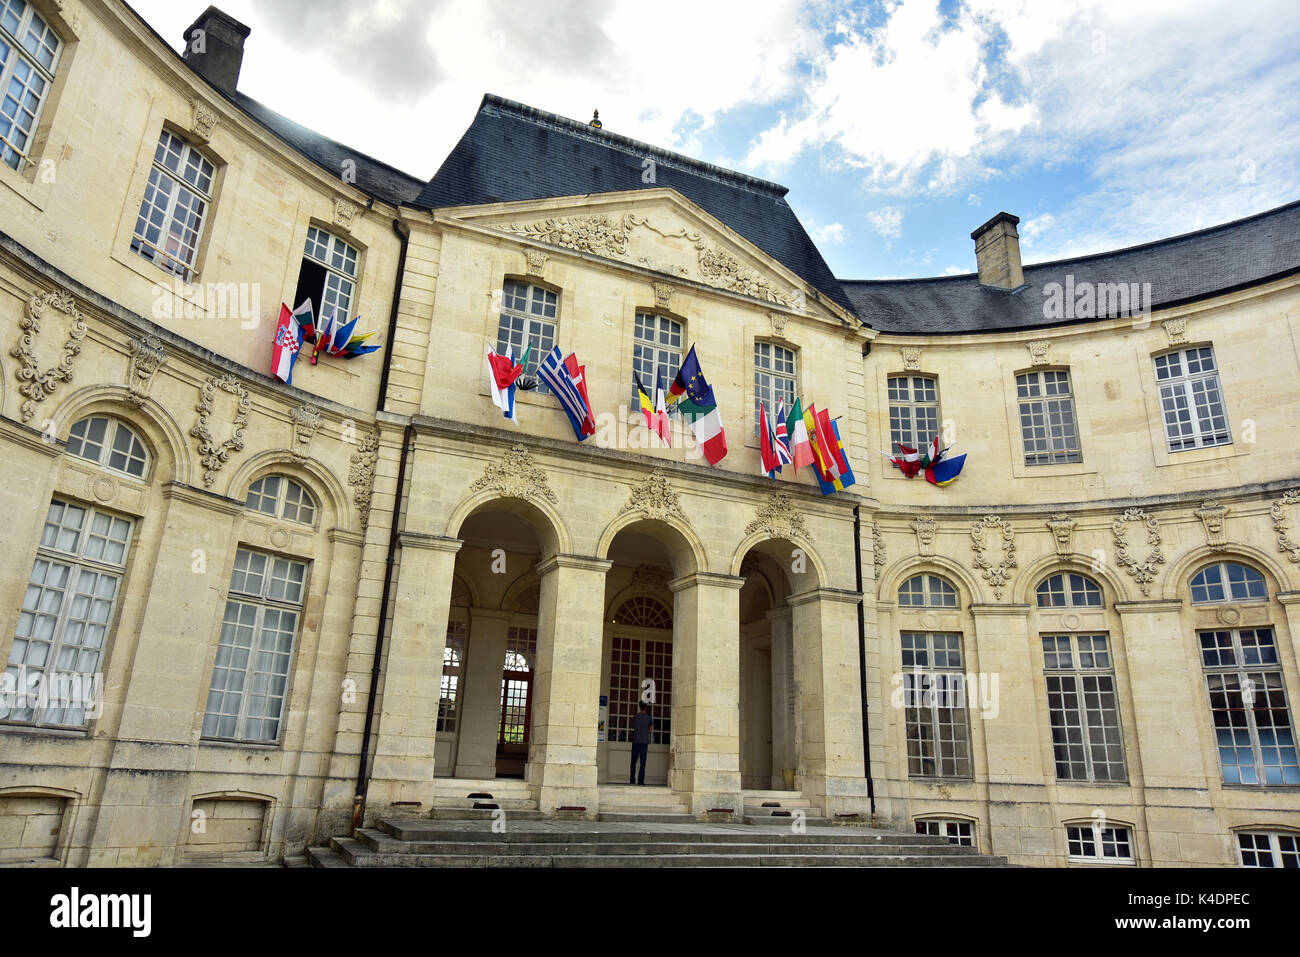 Verdun episcopal palace - Stock Image